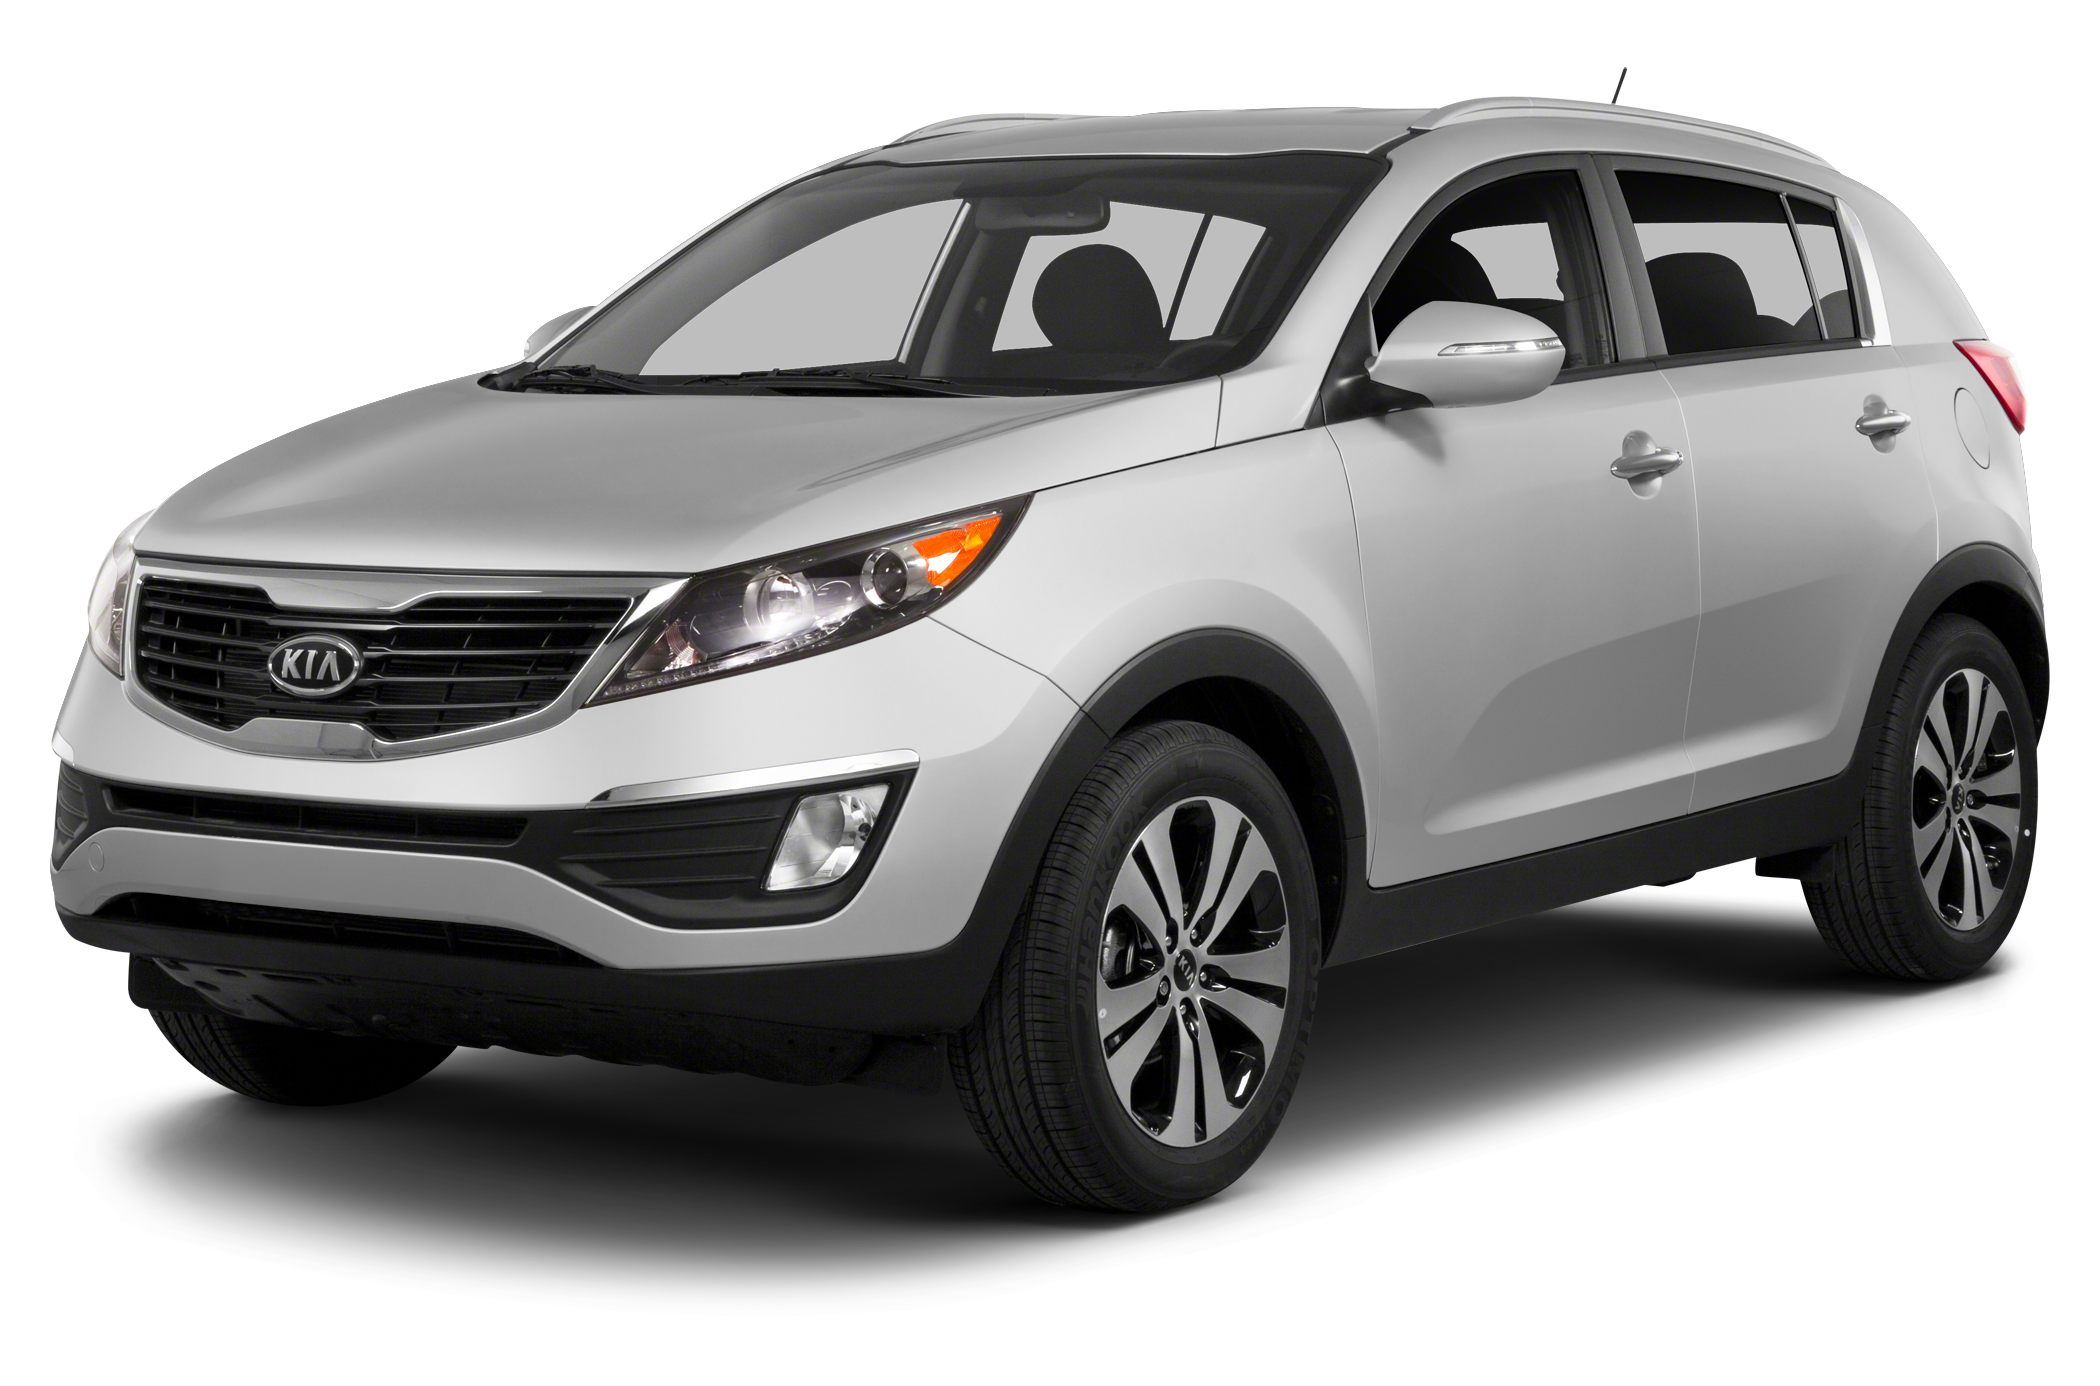 2013 Kia Sportage LX SUV for sale in Mobile for $0 with 19,485 miles